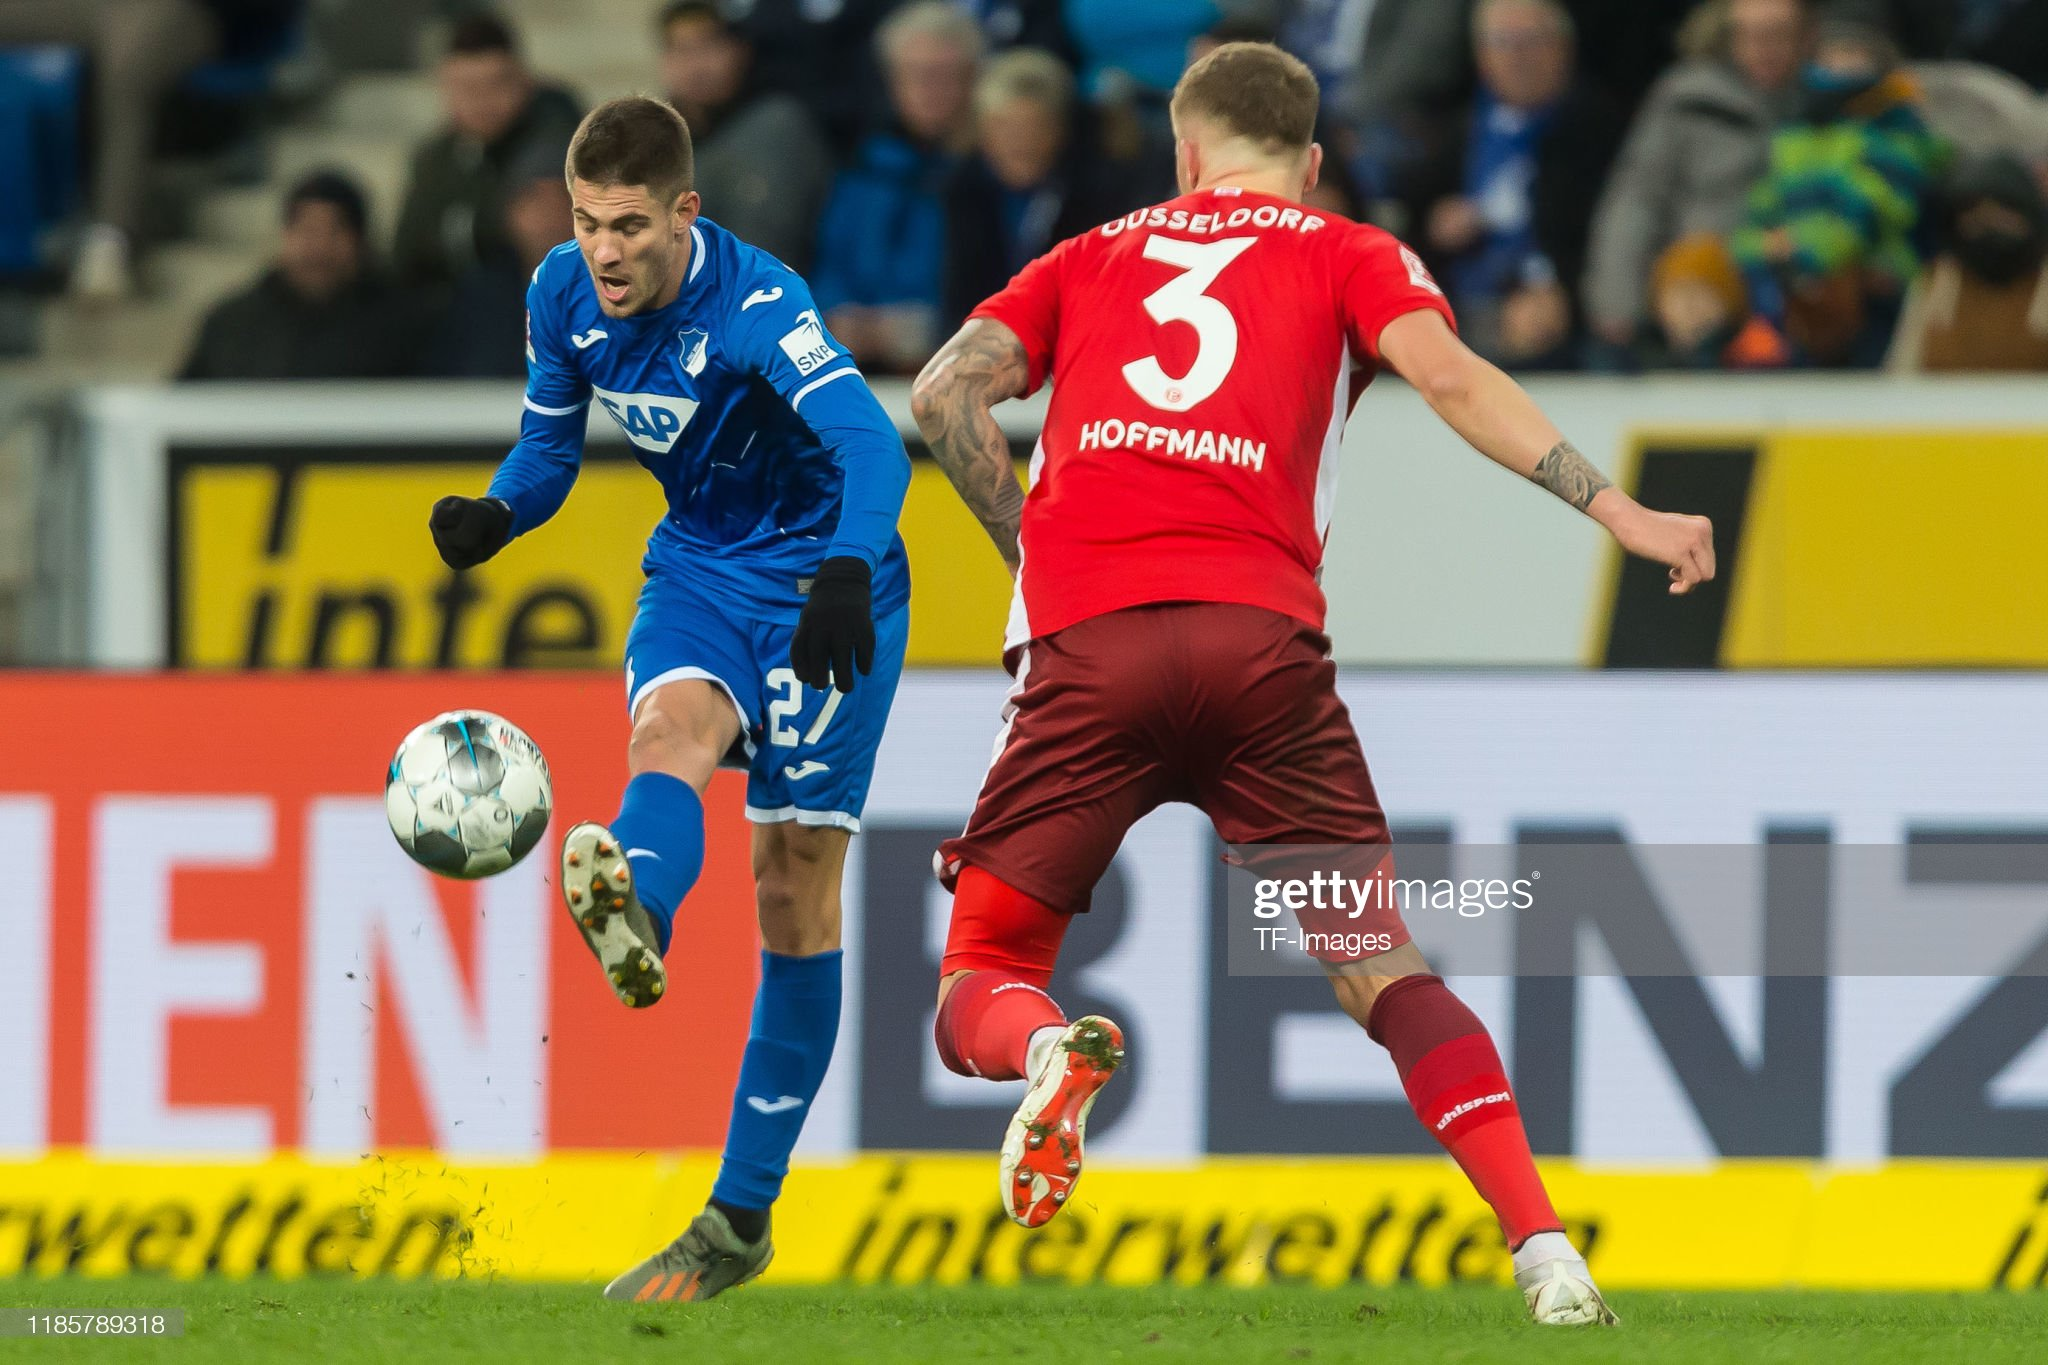 Fortuna Dusseldorf vs Hoffenheim Preview, prediction and odds